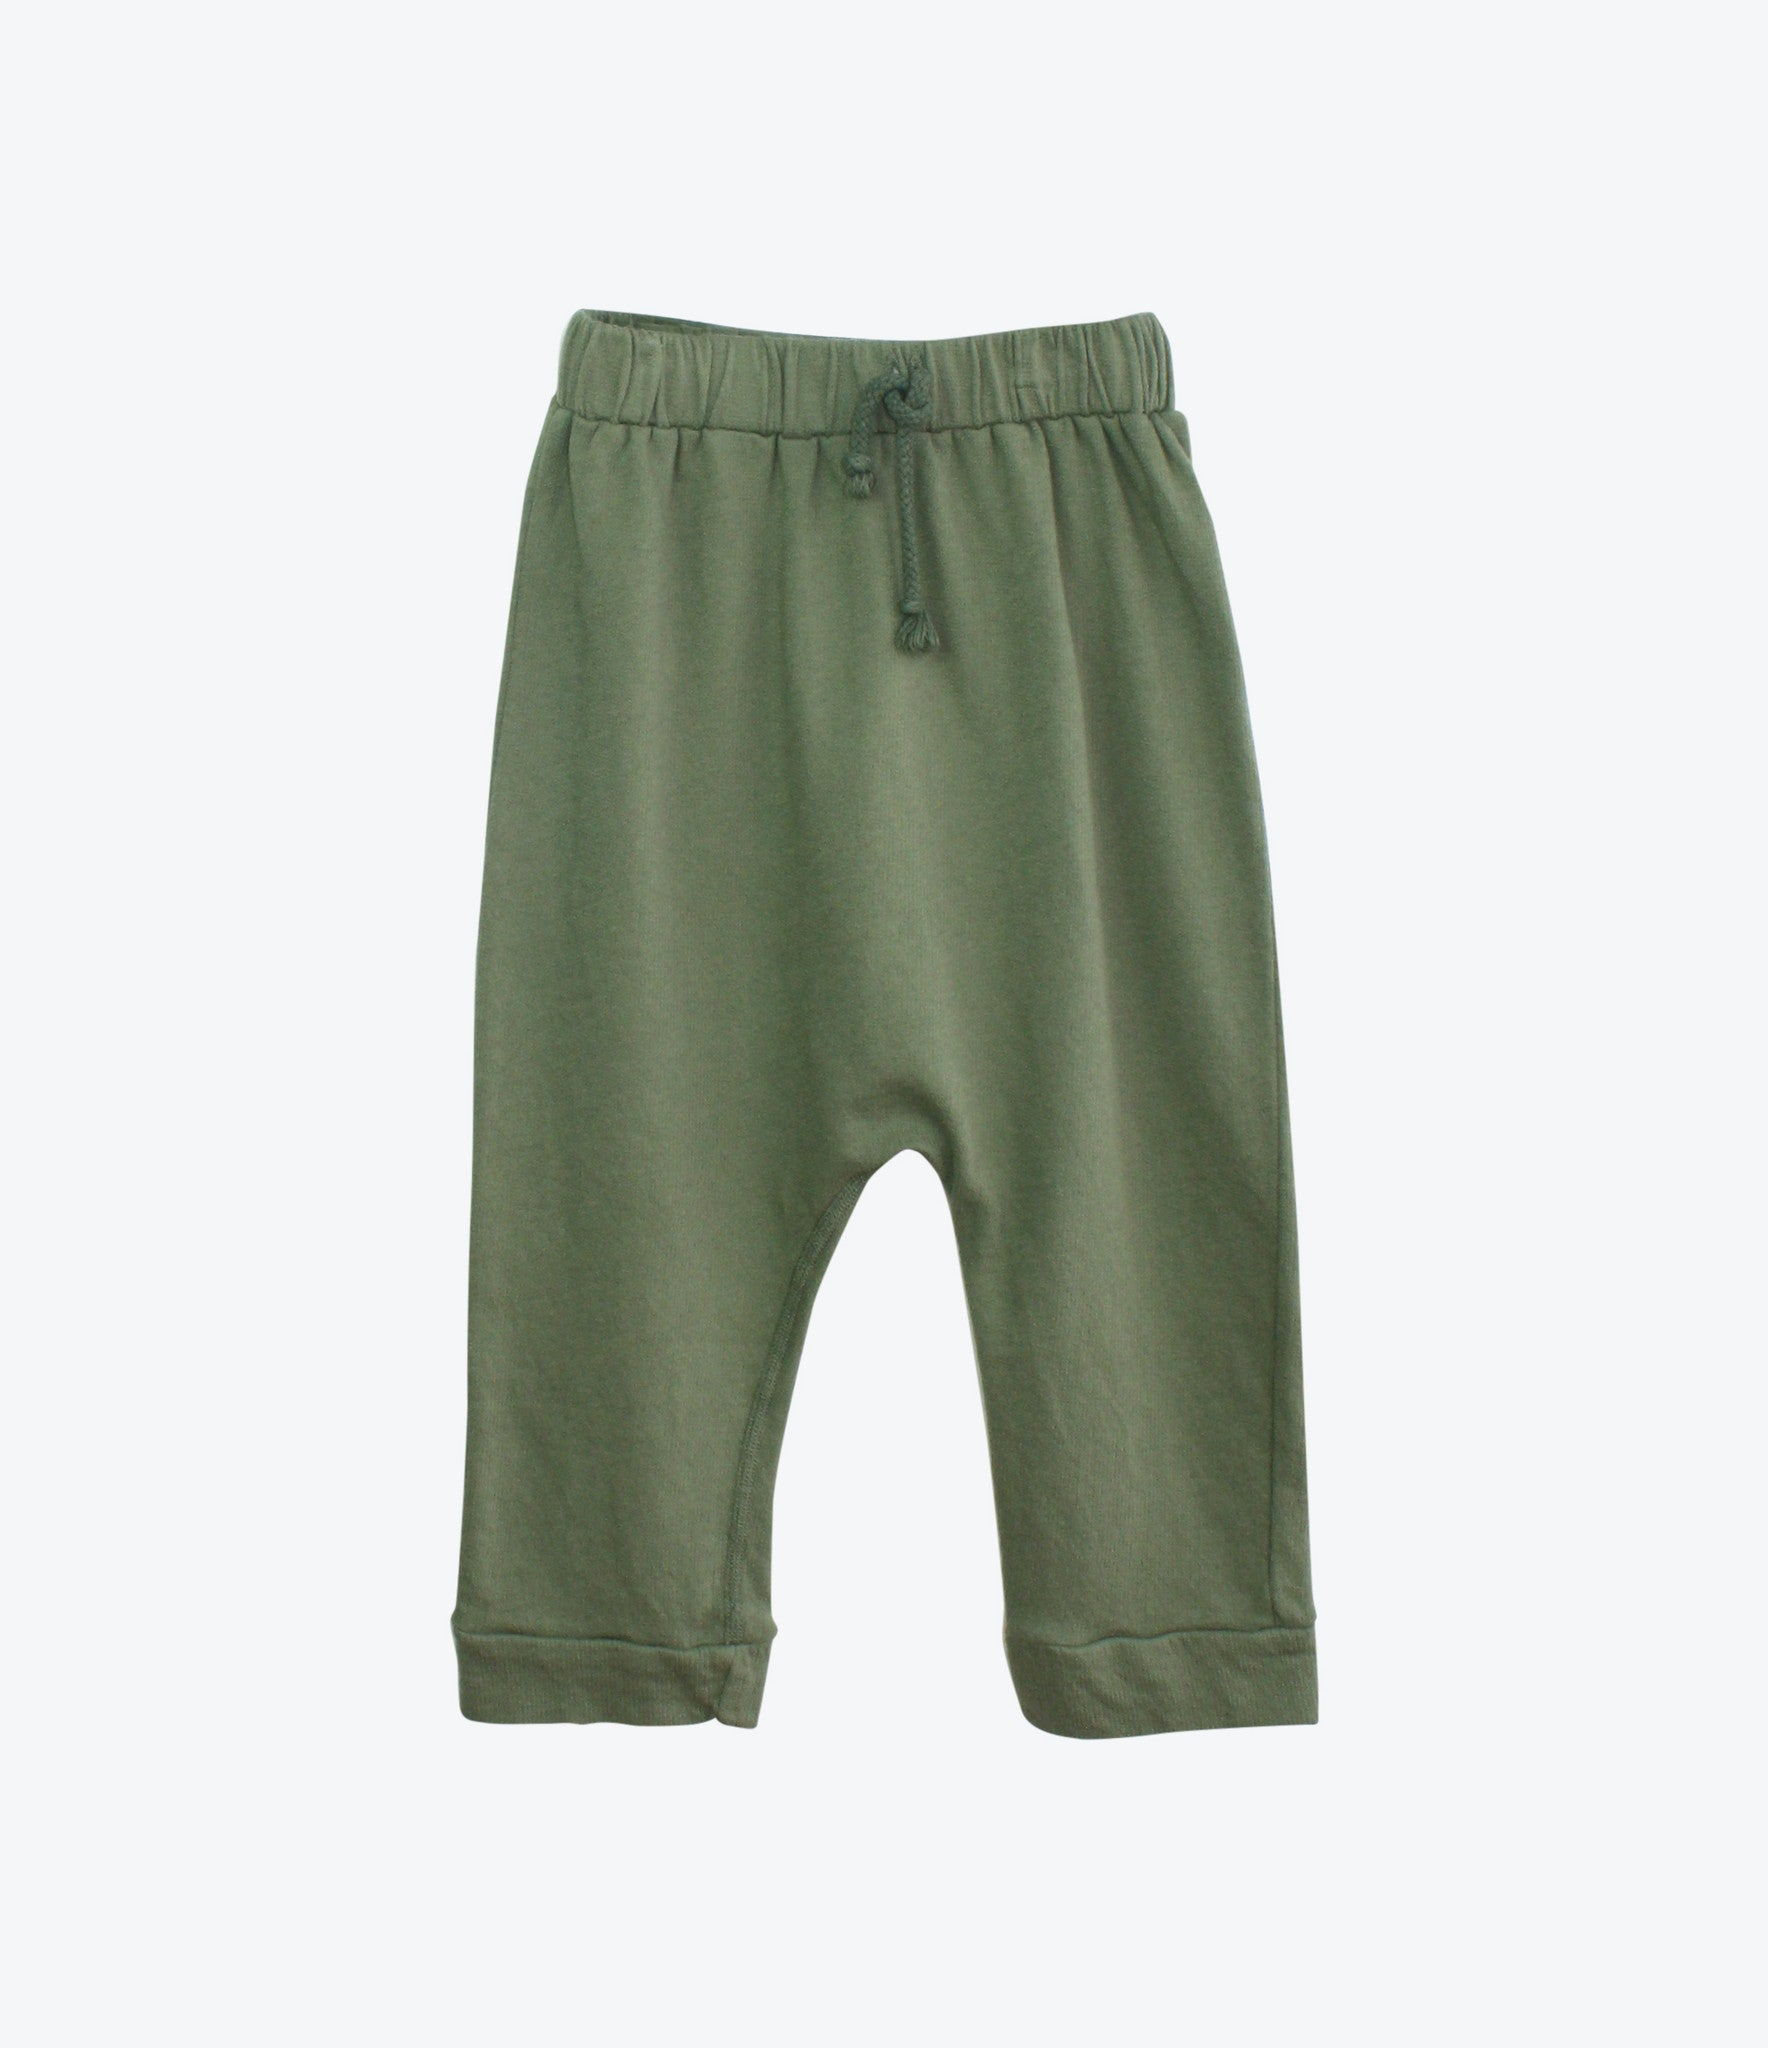 Nico Nico Aerial Harem Pant in Palm, found at Made Mini for Kids and babies. Organic, environmentally sustainable clothing for kids. Super comfy and cool, designer gears. F